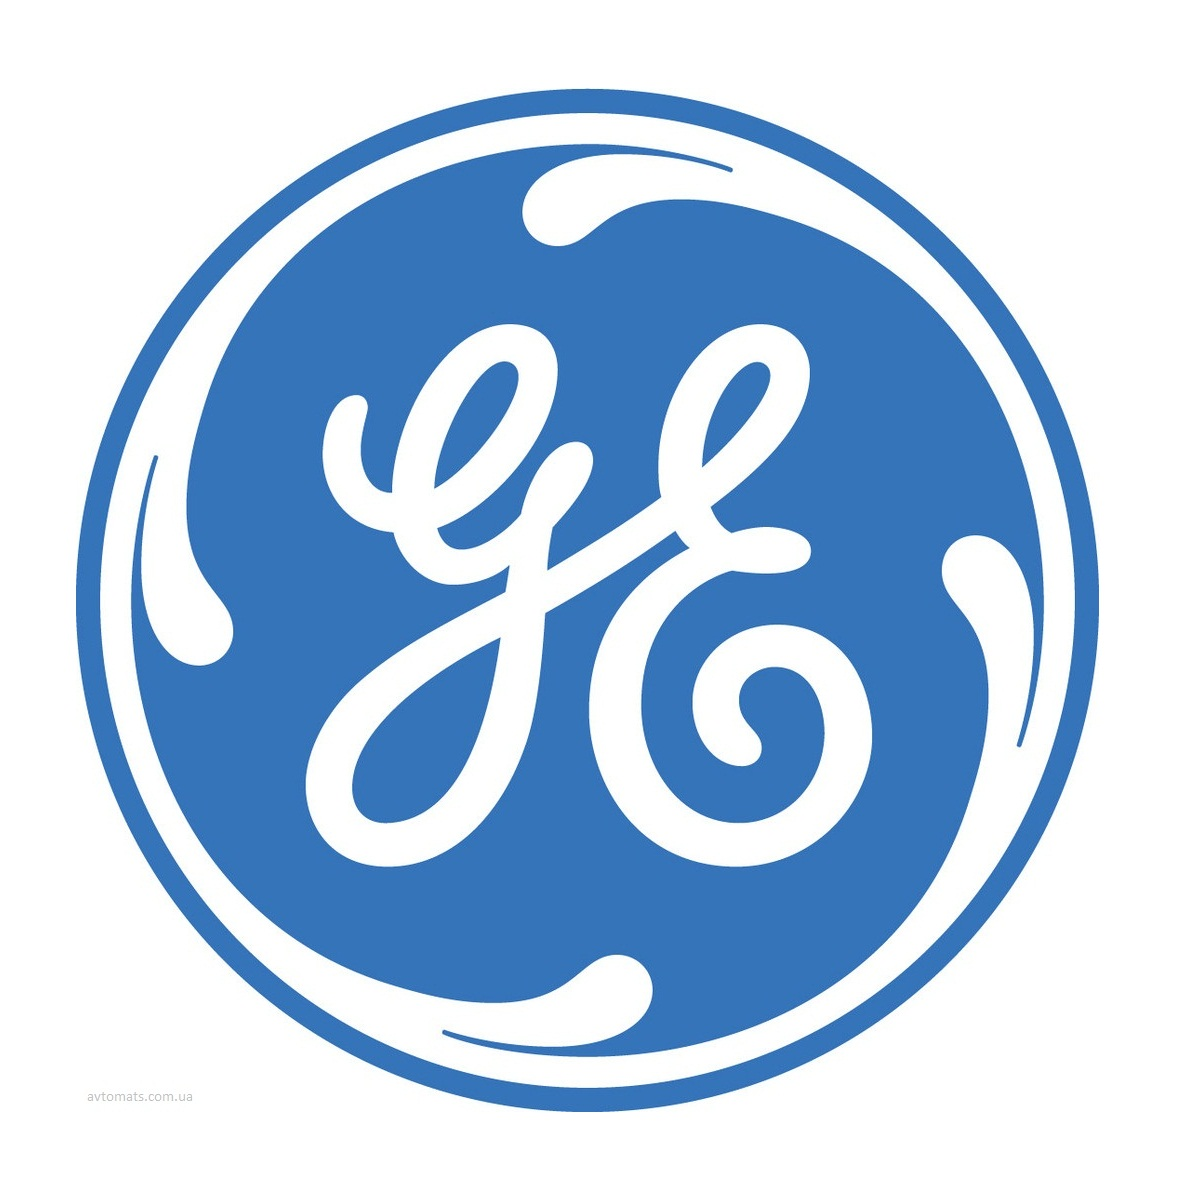 ������������� ���������� General Electric, ������ ��������� �������������� ������������